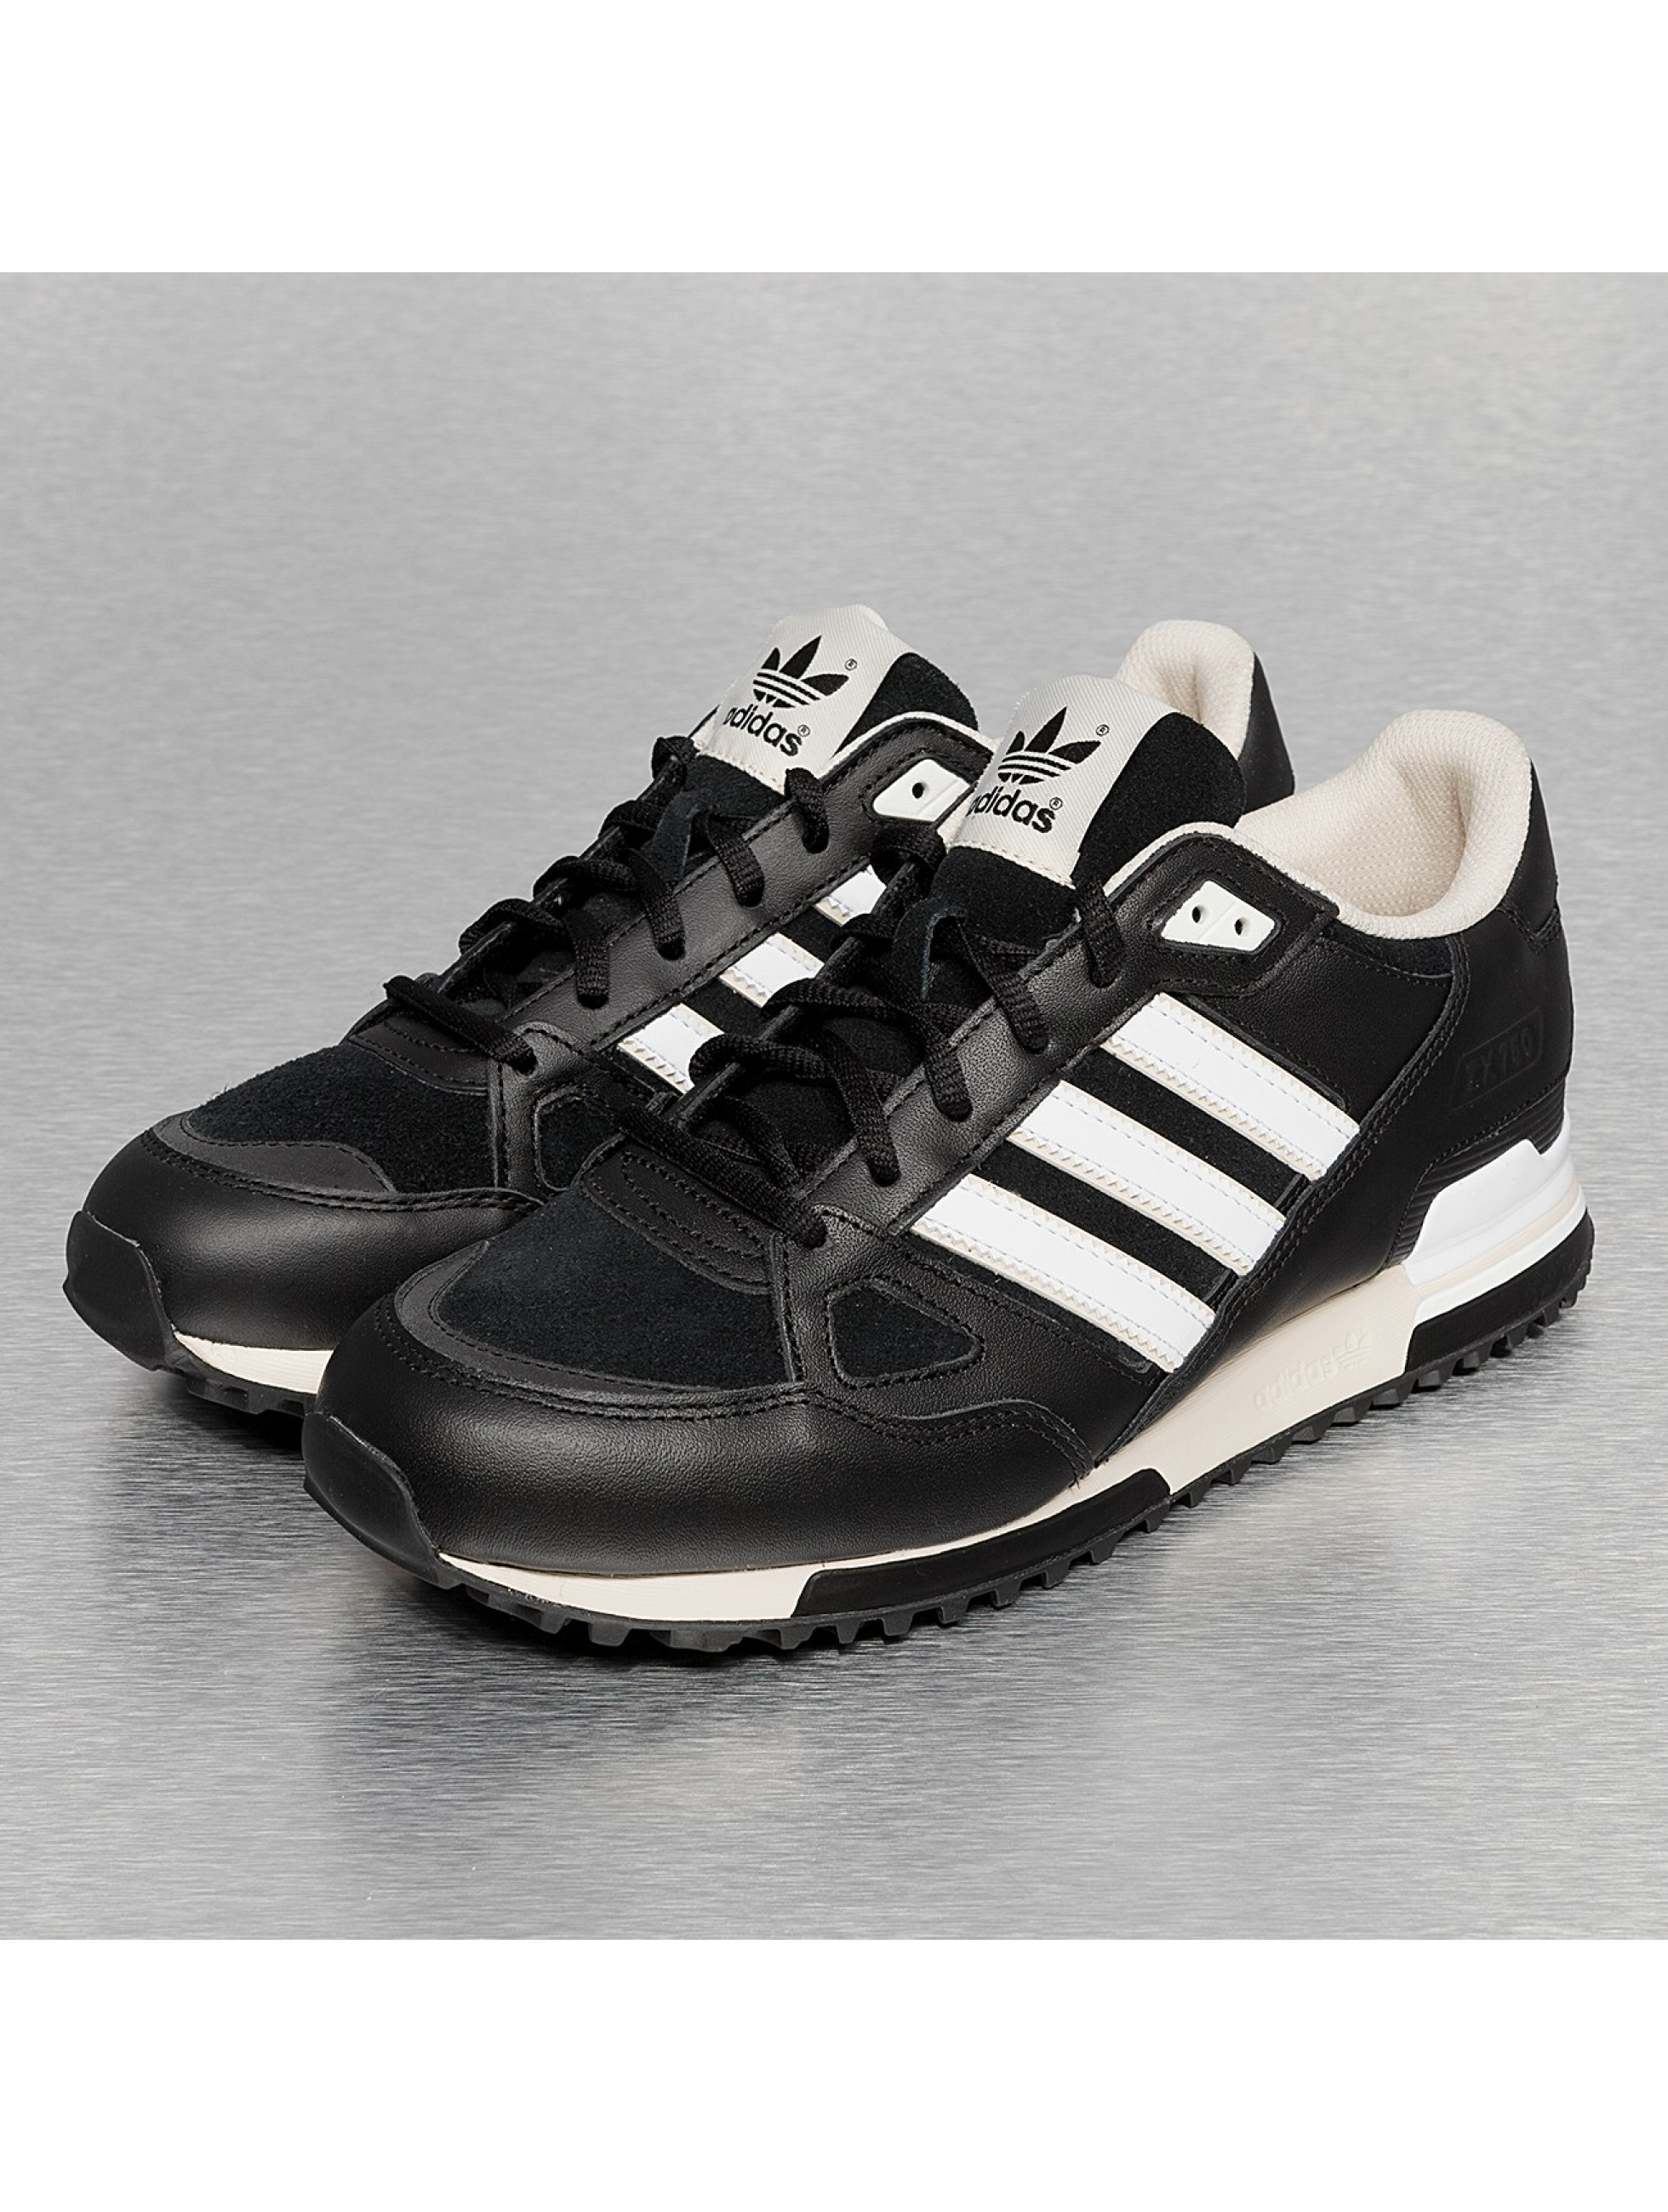 adidas schuhe sneaker zx 750 in schwarz 186715. Black Bedroom Furniture Sets. Home Design Ideas